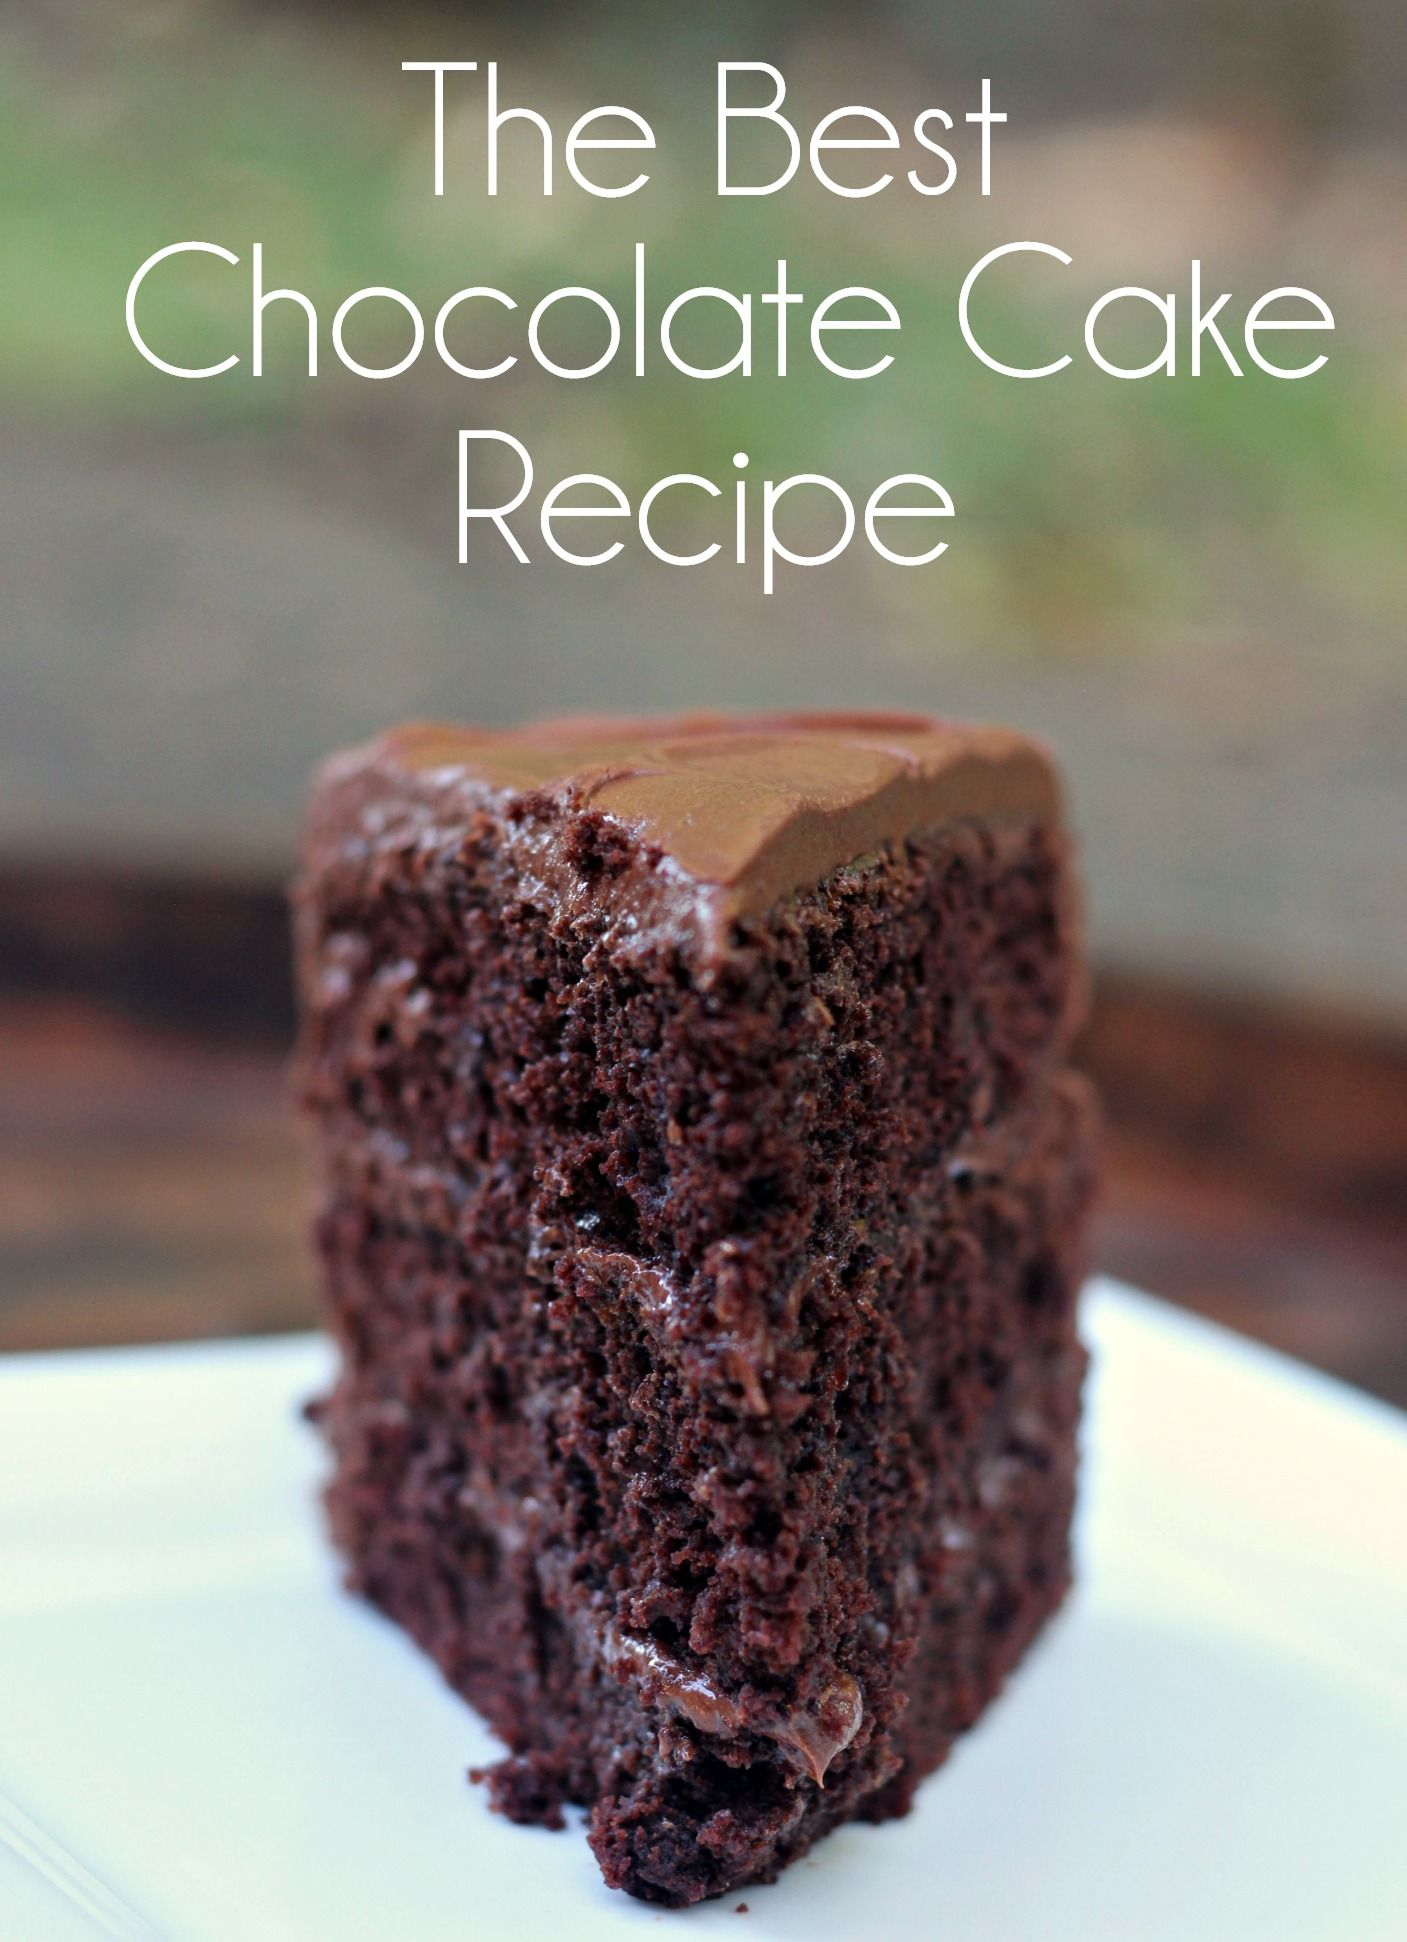 The Best Chocolate Cake Recipe Three Layer Chocolate Cake Chocolate Sour Cream Amazing Chocolate Cake Recipe Chocolate Cake Recipe Sour Cream Chocolate Cake